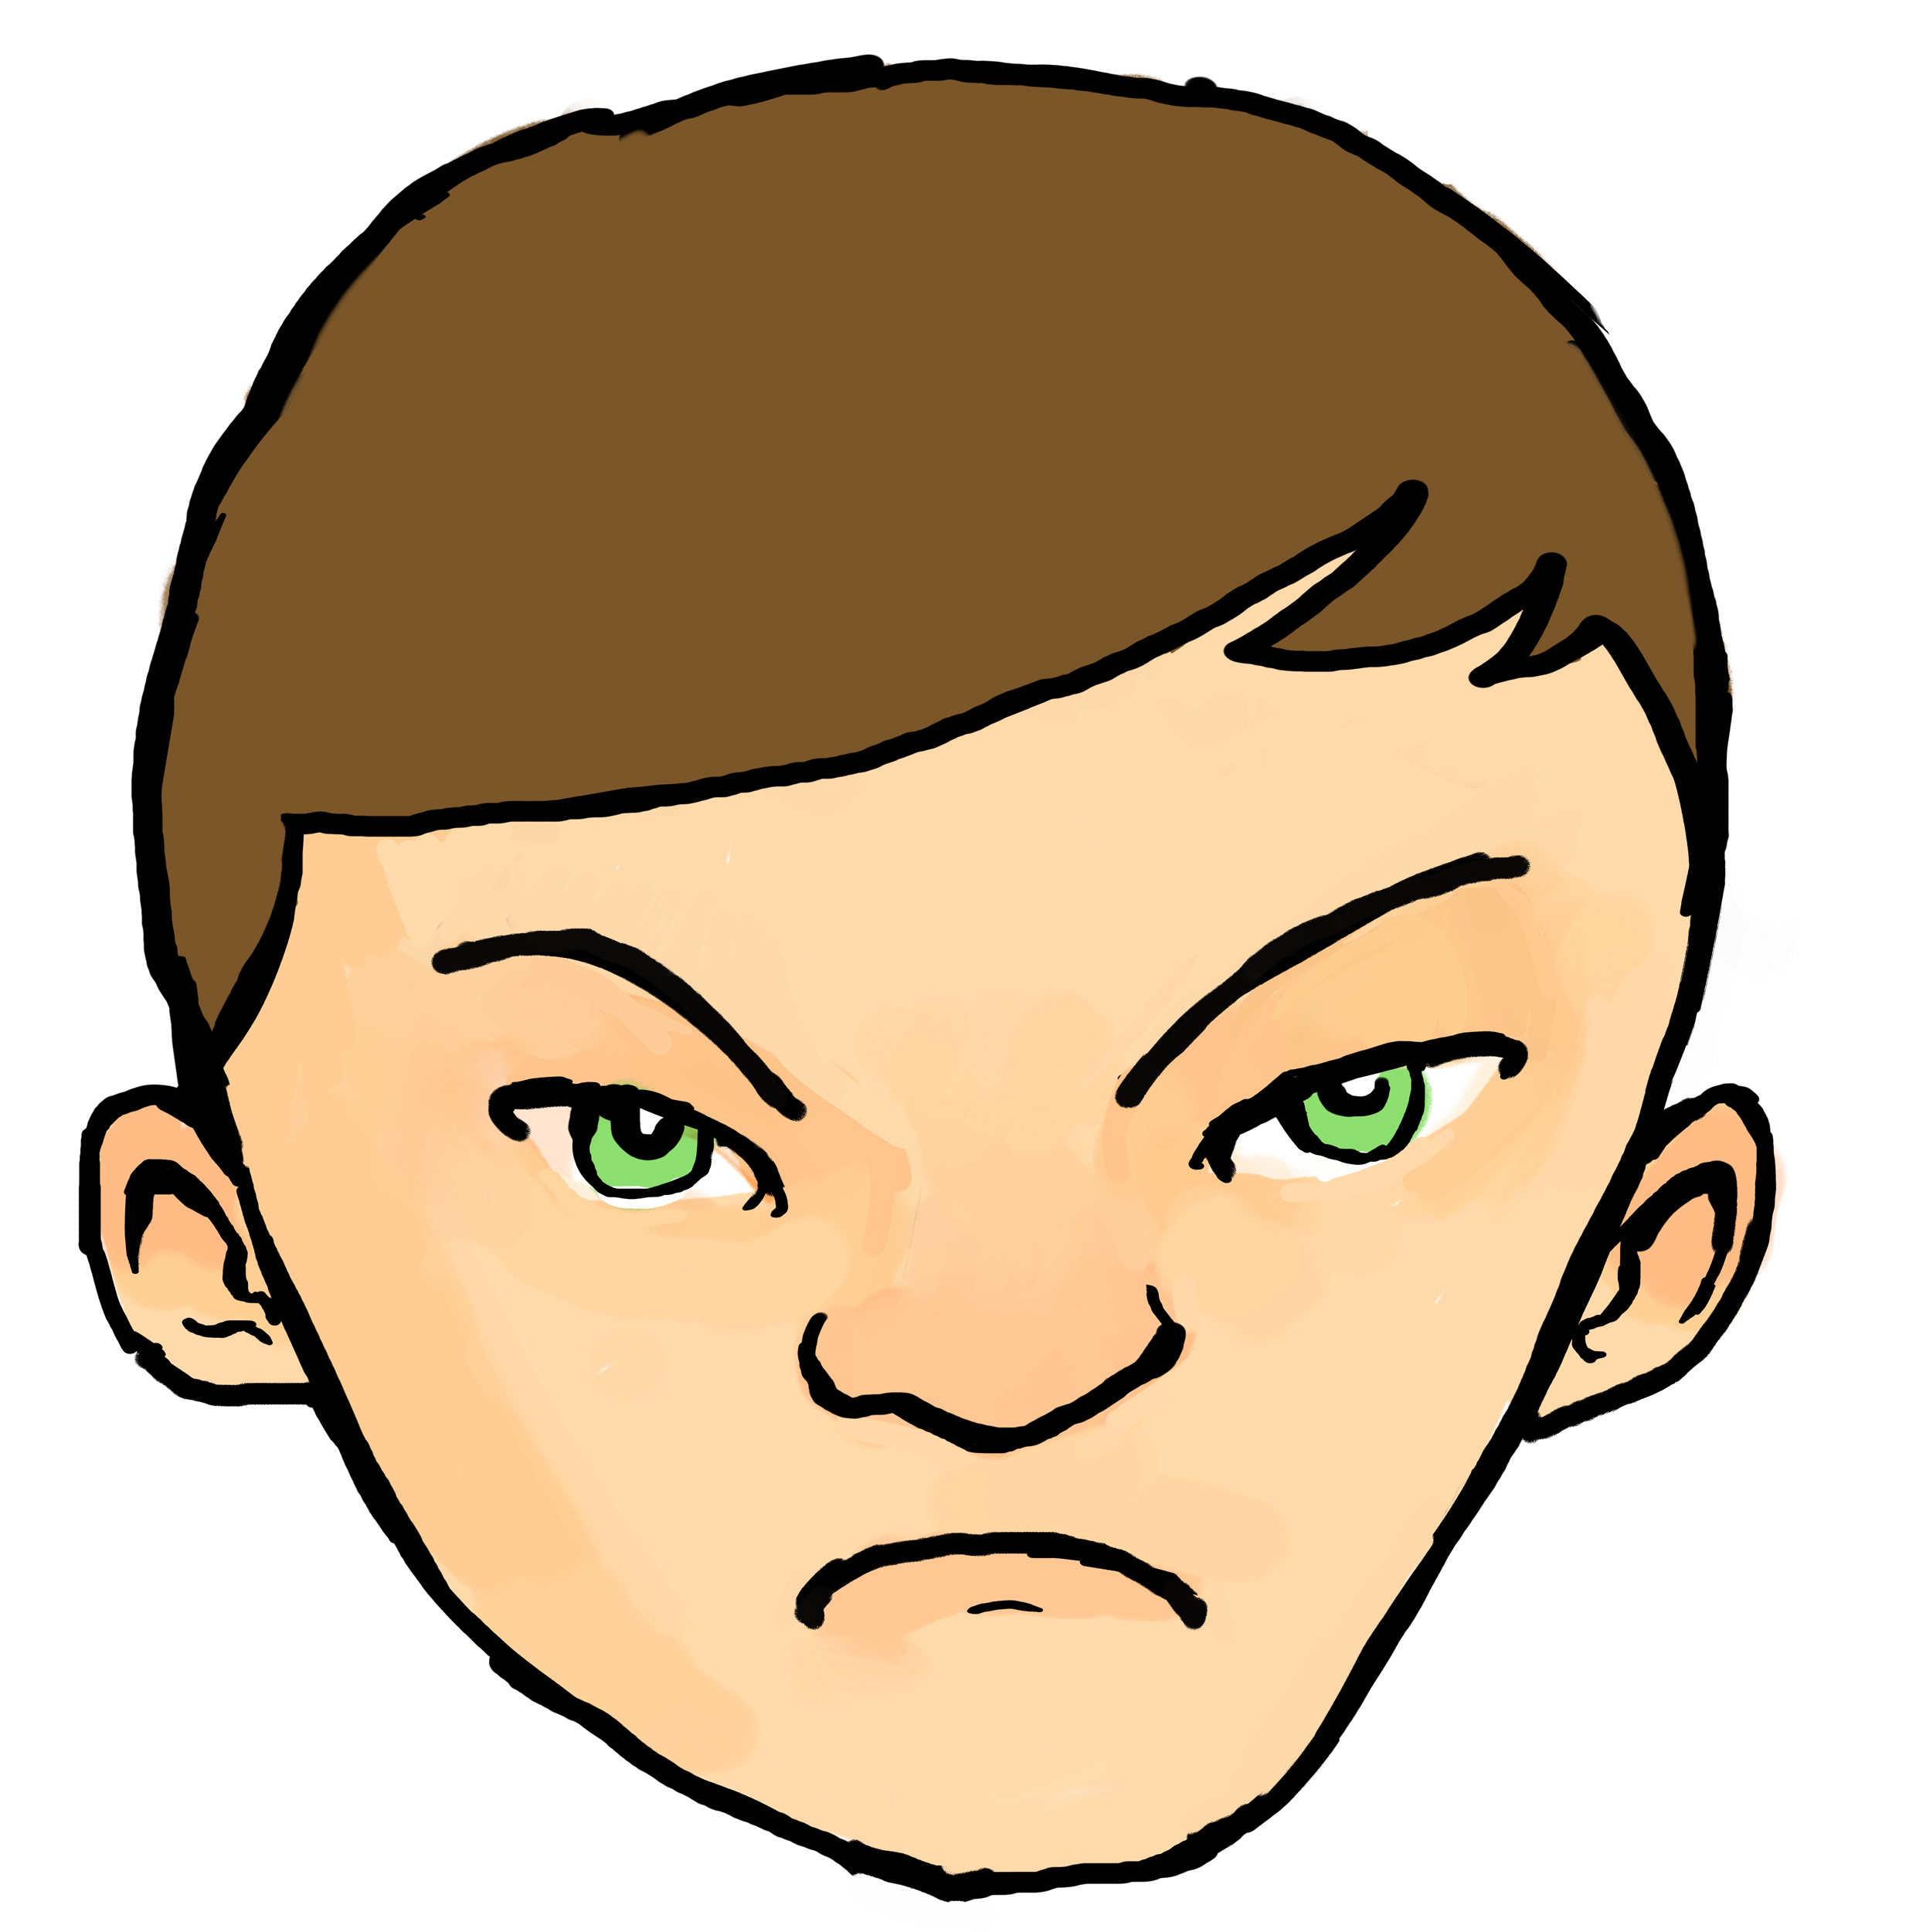 angry kid face clip art - photo #17